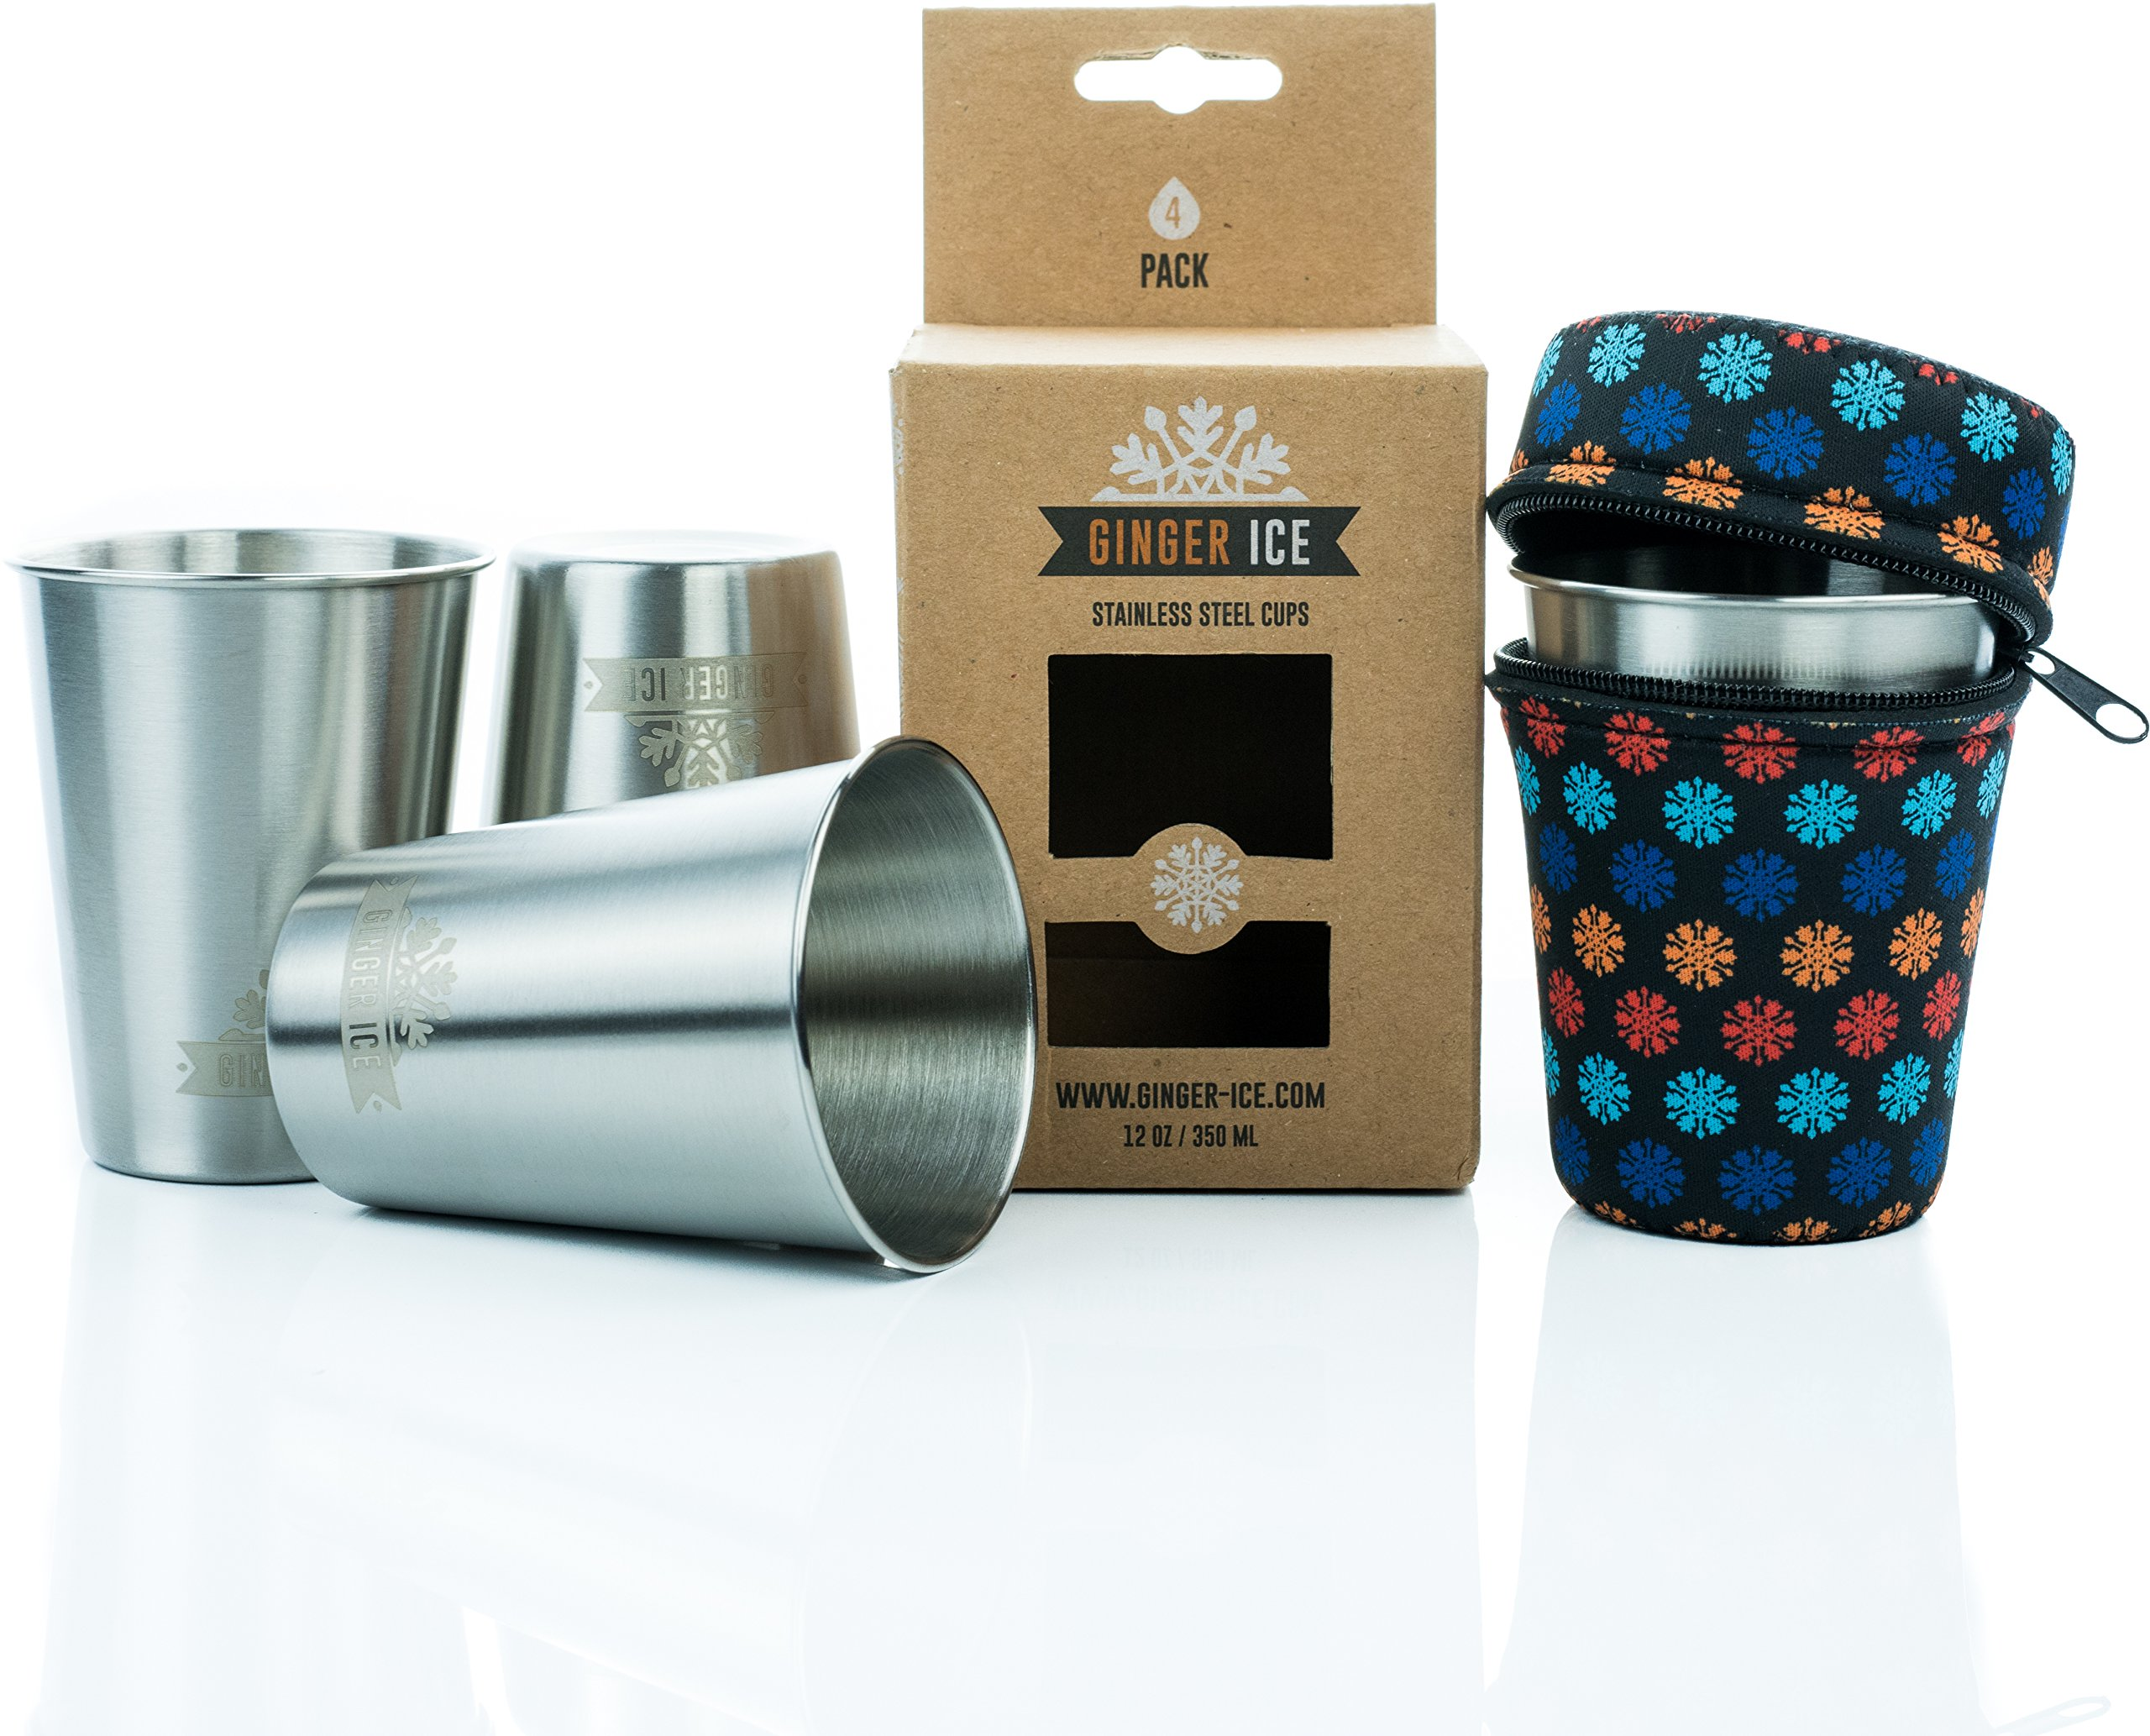 Stainless Steel Cups Multi Purpose Stackable Durable Safe Camping Travelling Metal Pint Mug Set with Insulating Carrying Case 12 Oz - 4 Pack + Pouch (Snowflake)